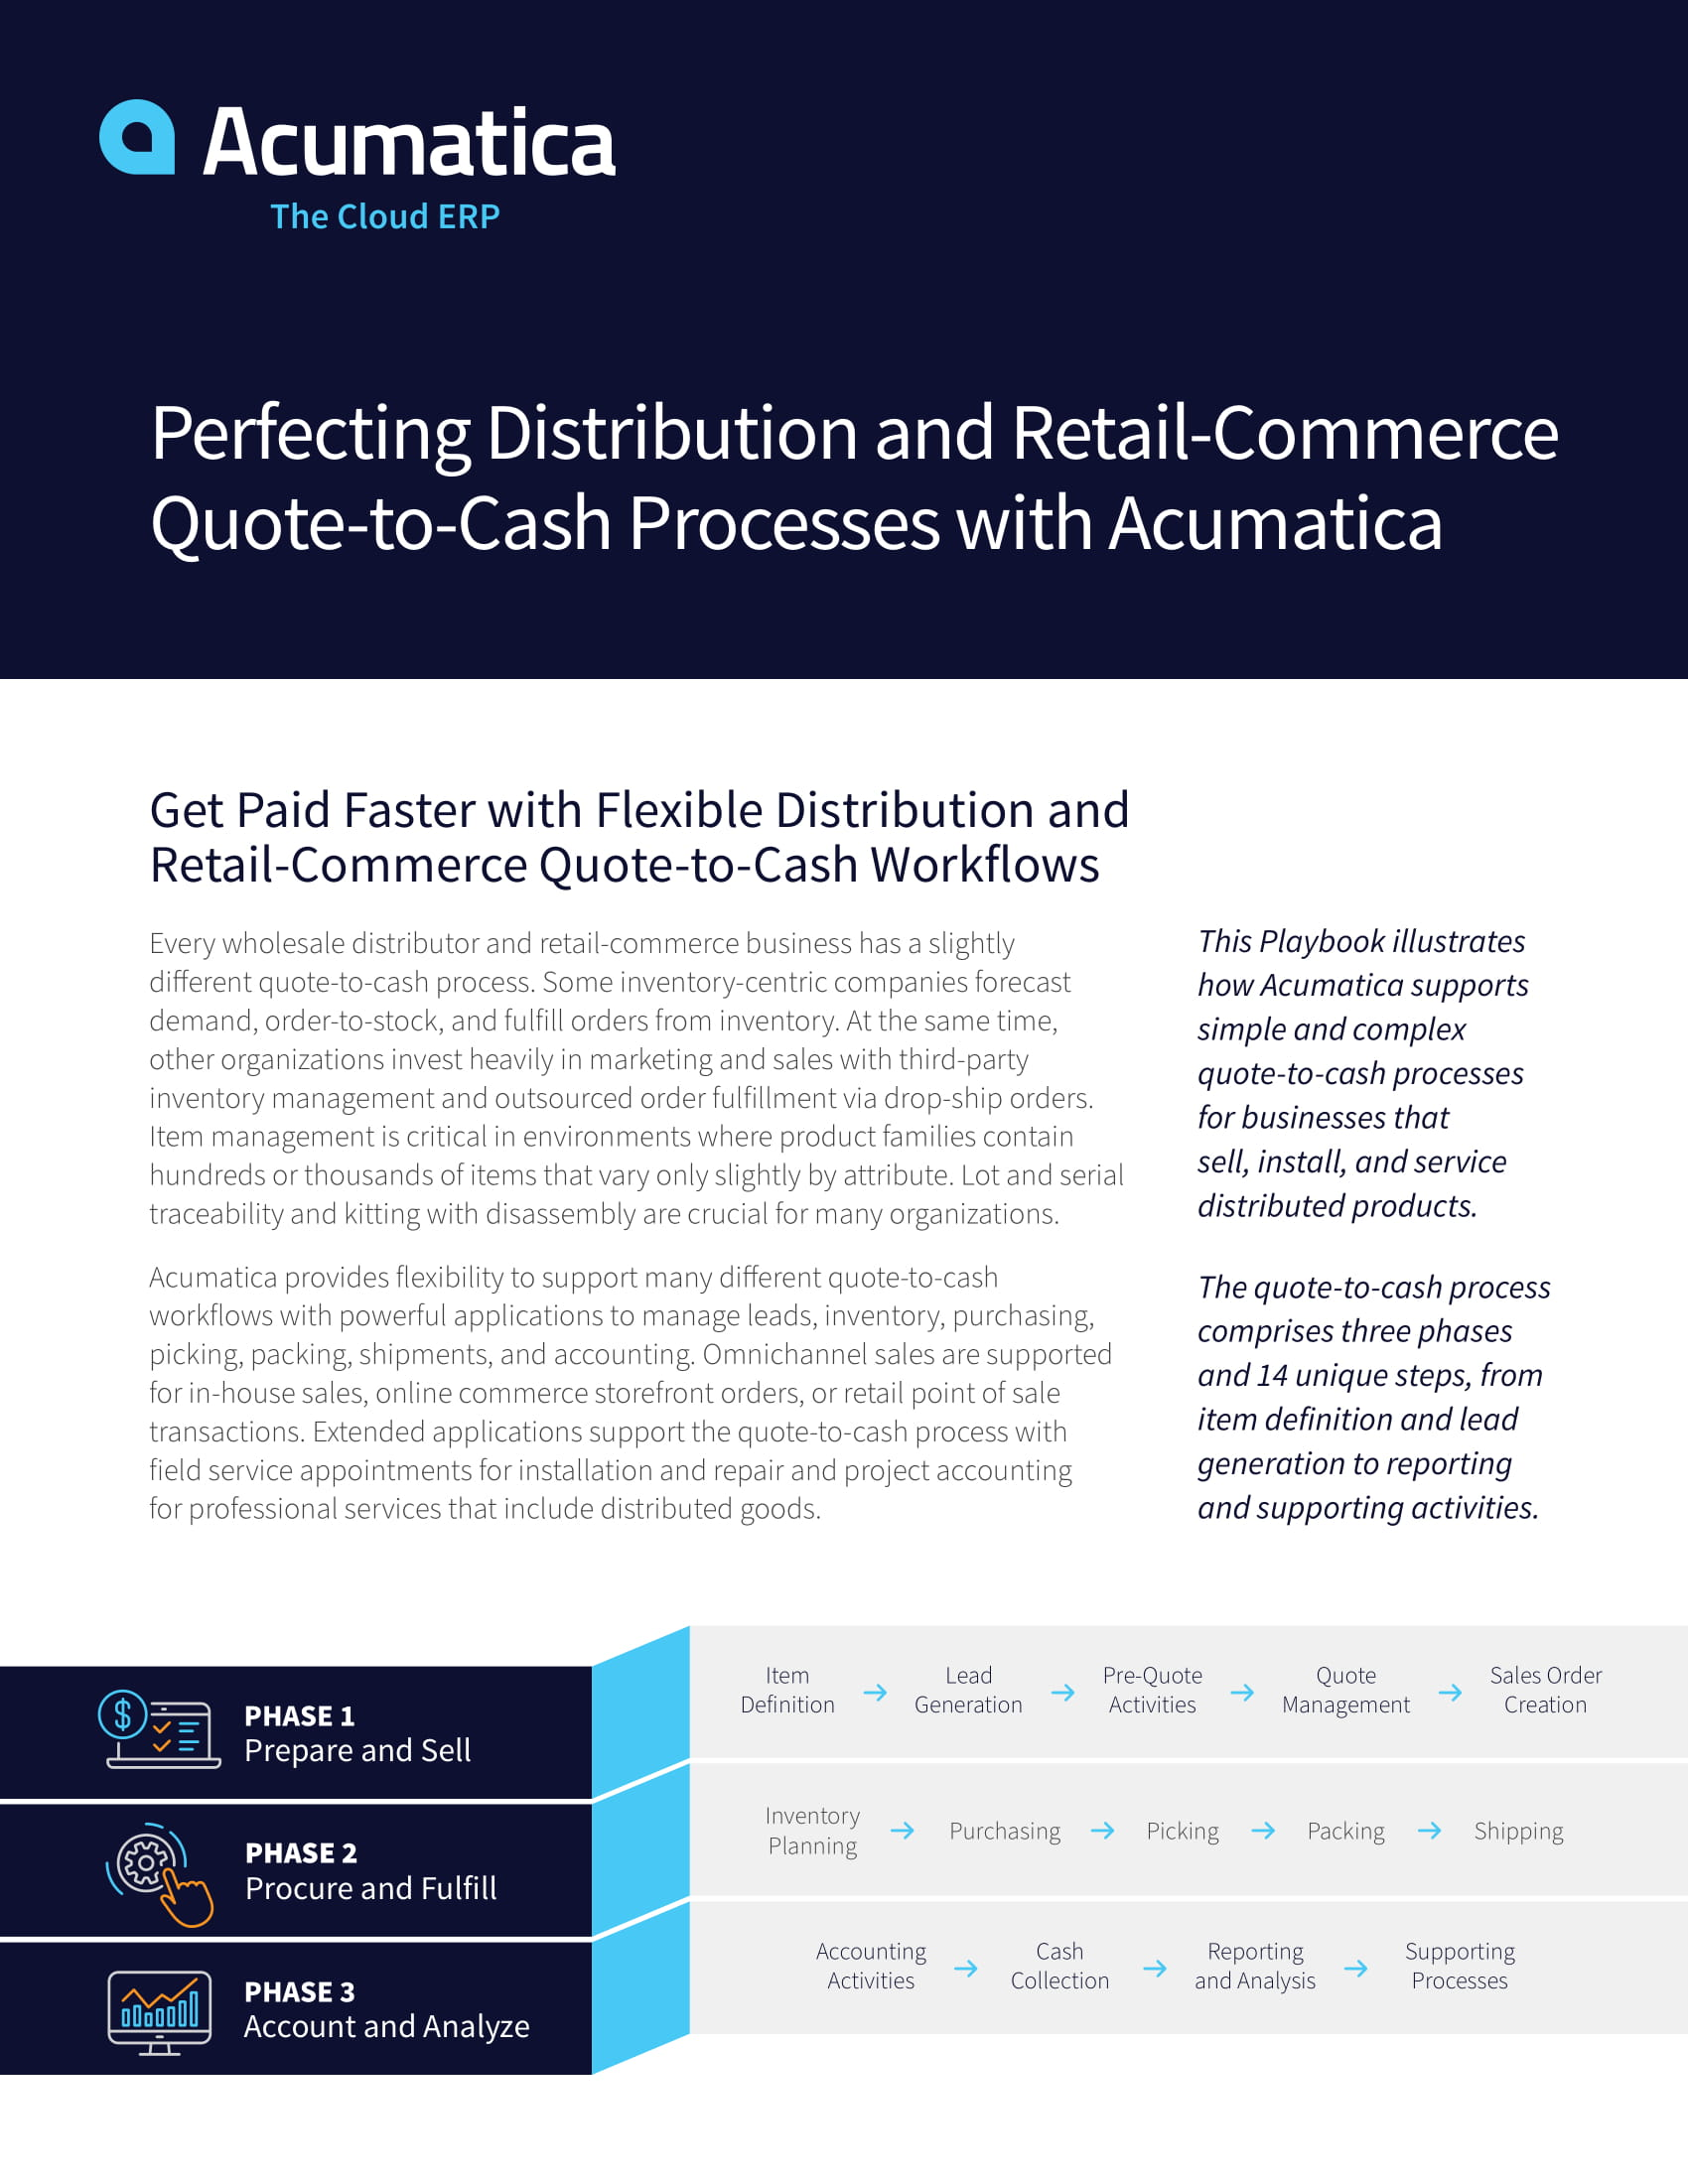 Q2C Cycle Software for Distribution and Retail-Commerce